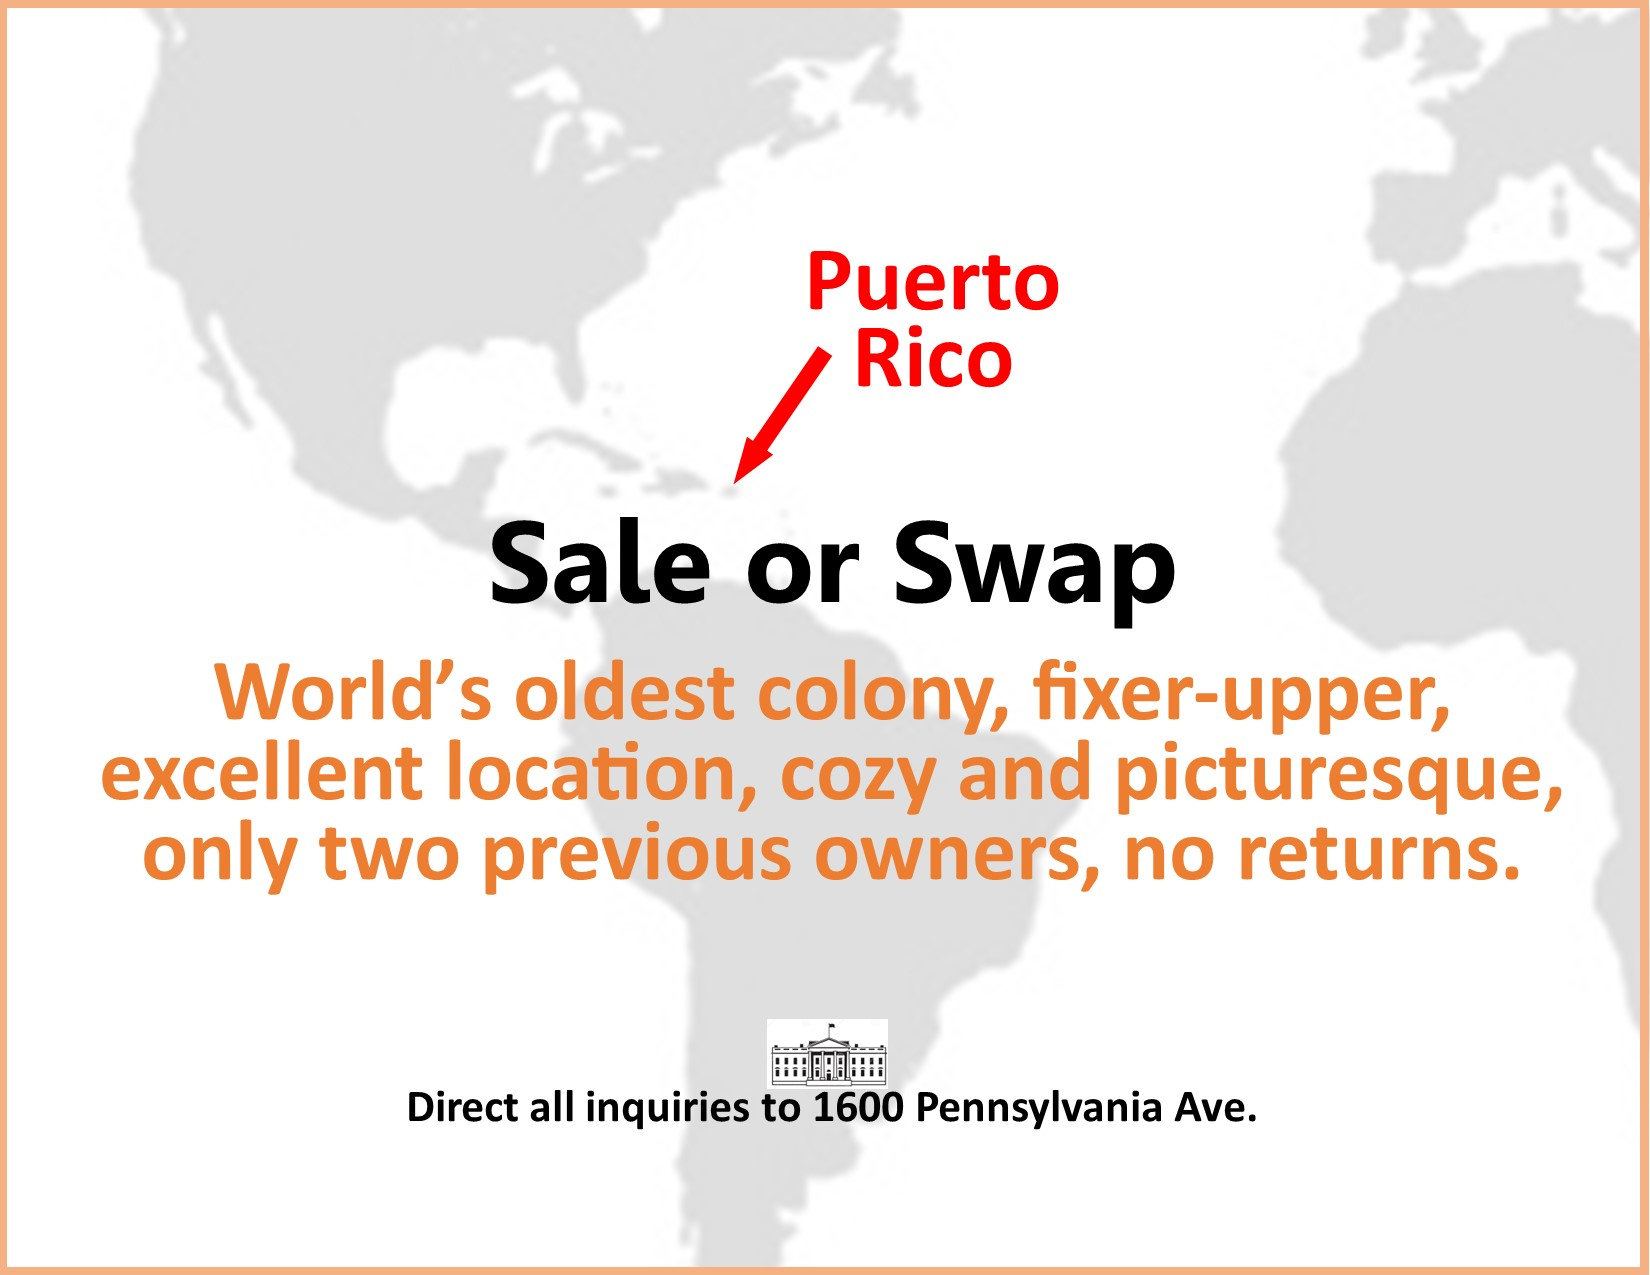 Image advertising Puerto Rico being for sale